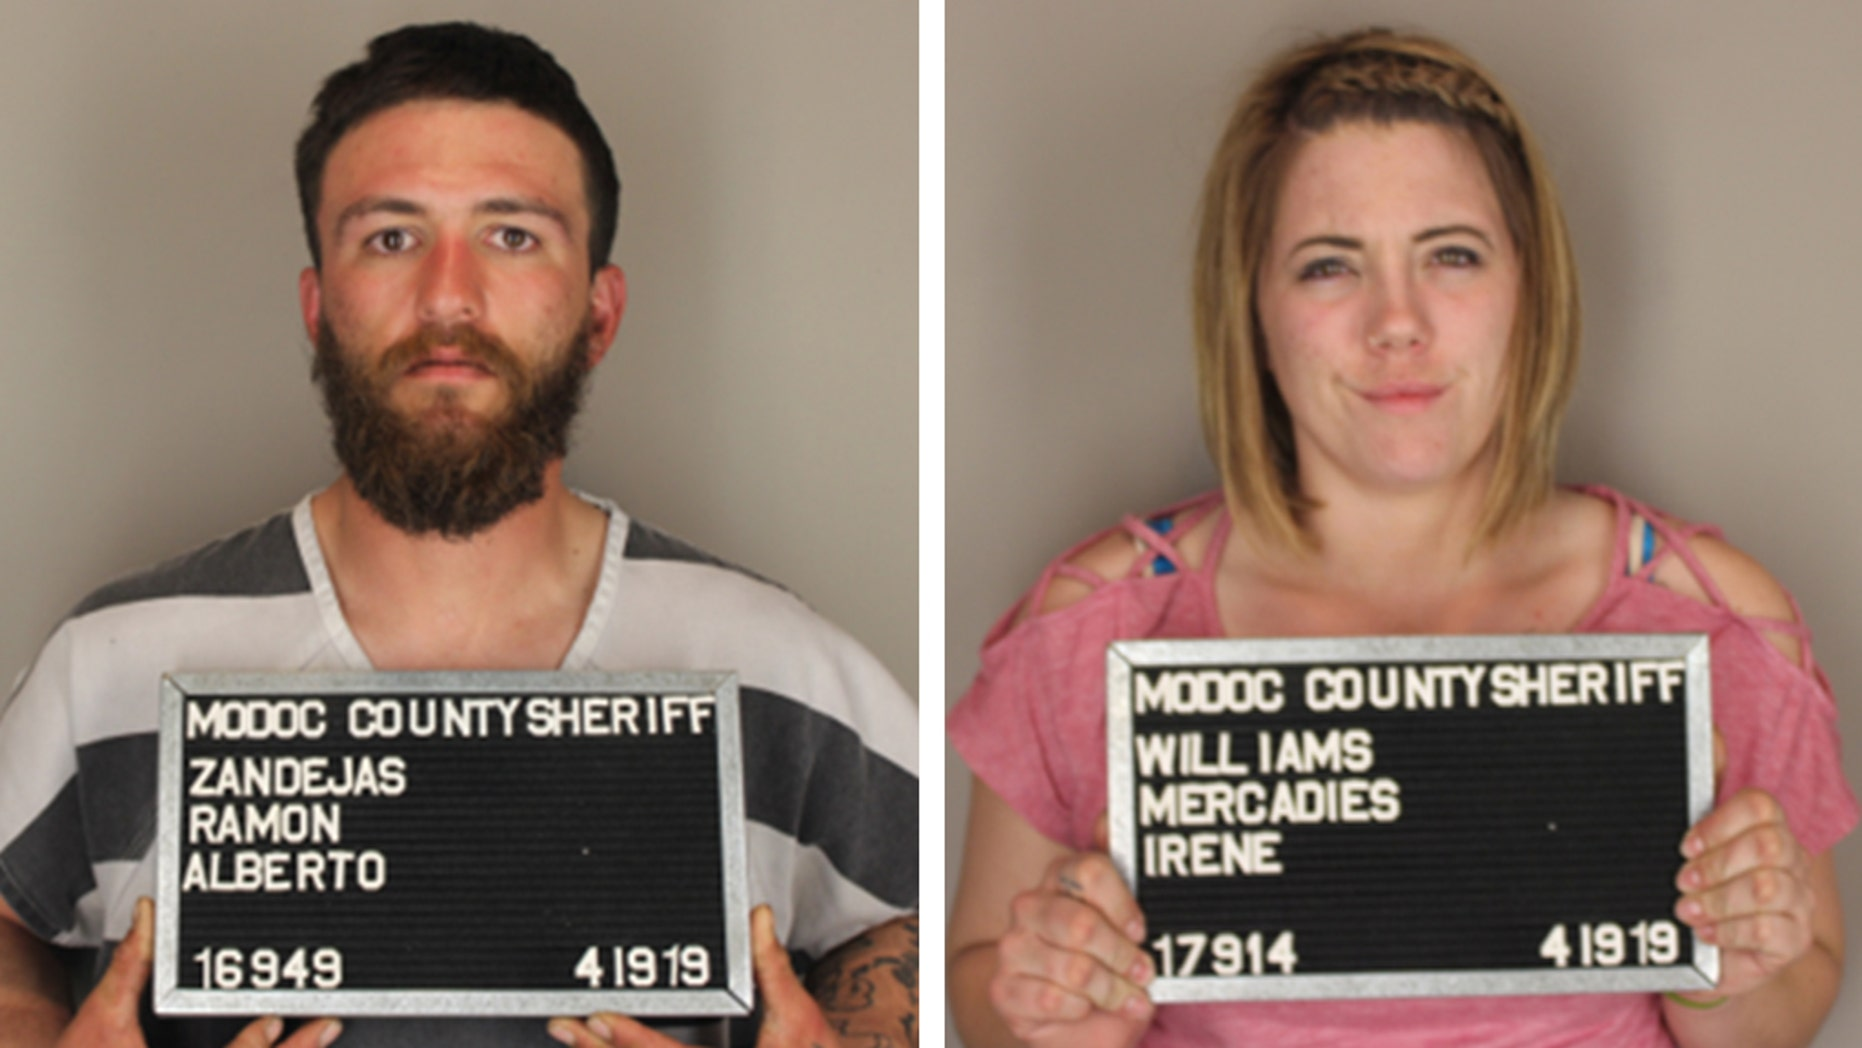 Deputies arrested 25-year-old Ramon Zendejas and his girlfriend, 25-year-old Mercadies Williams on Friday on illegal firearms possession and child endangerment charges. (Modoc County Sheriff's Office)